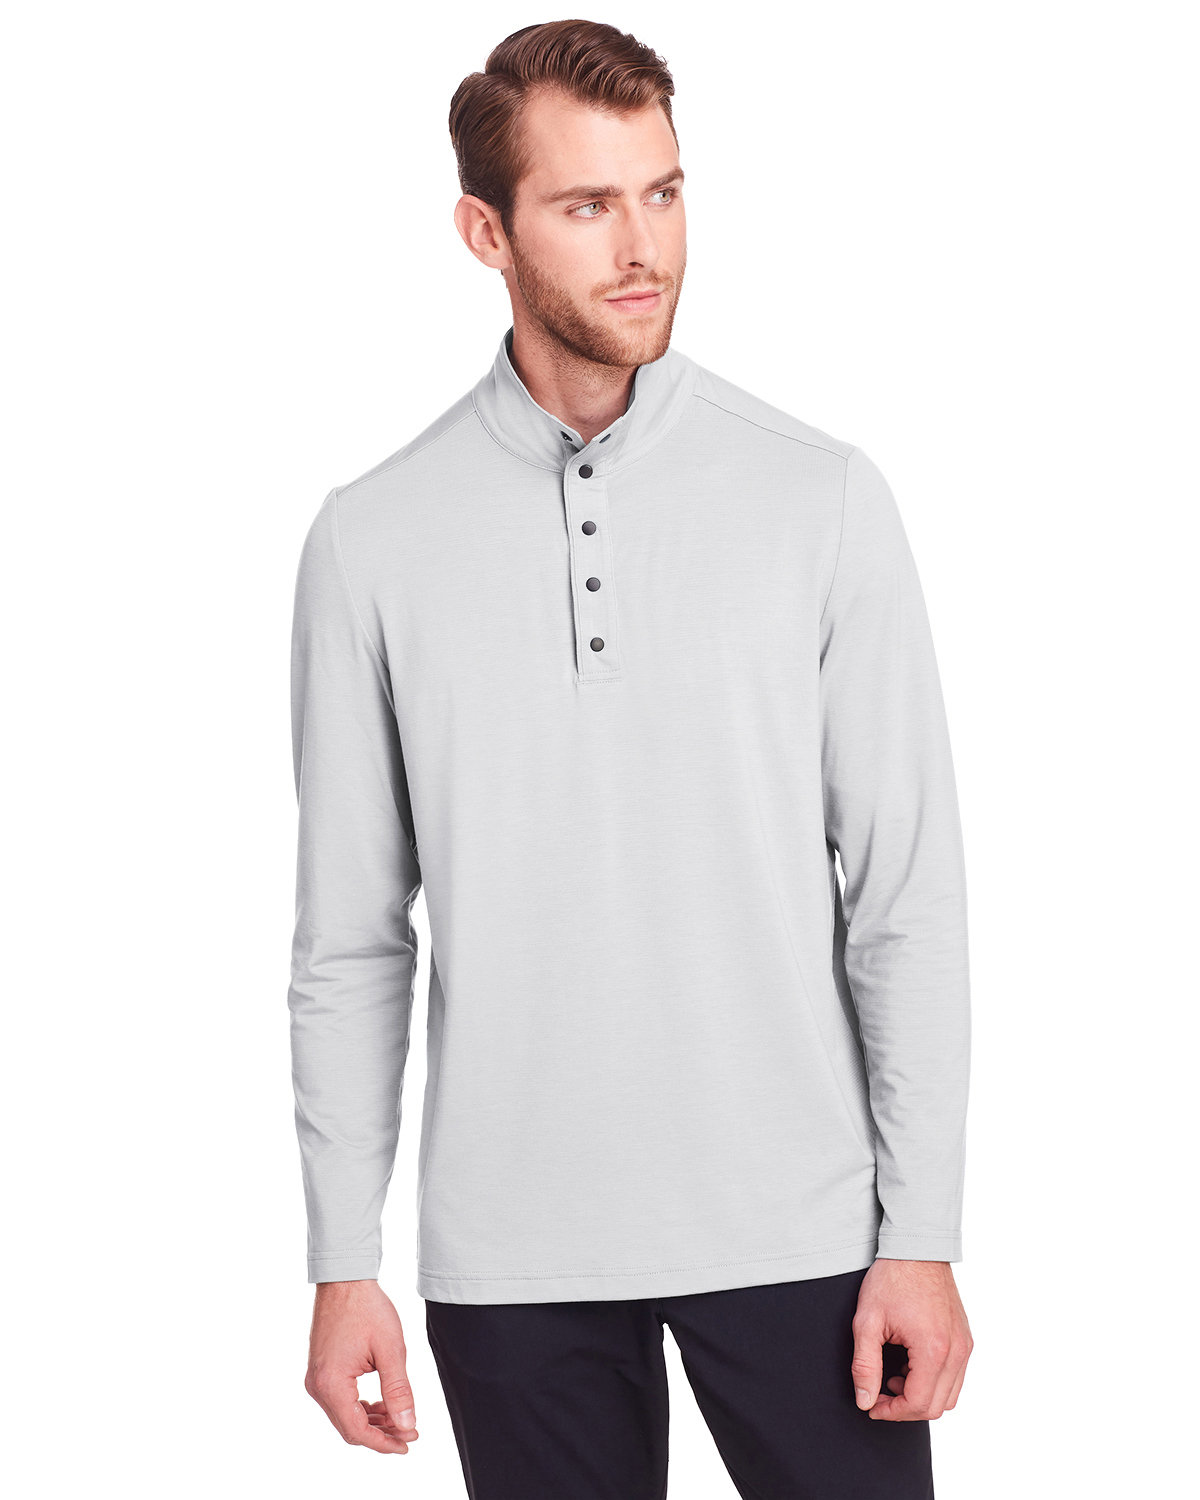 North End Men's Jaq Snap-Up Stretch Performance Pullover PLATINUM